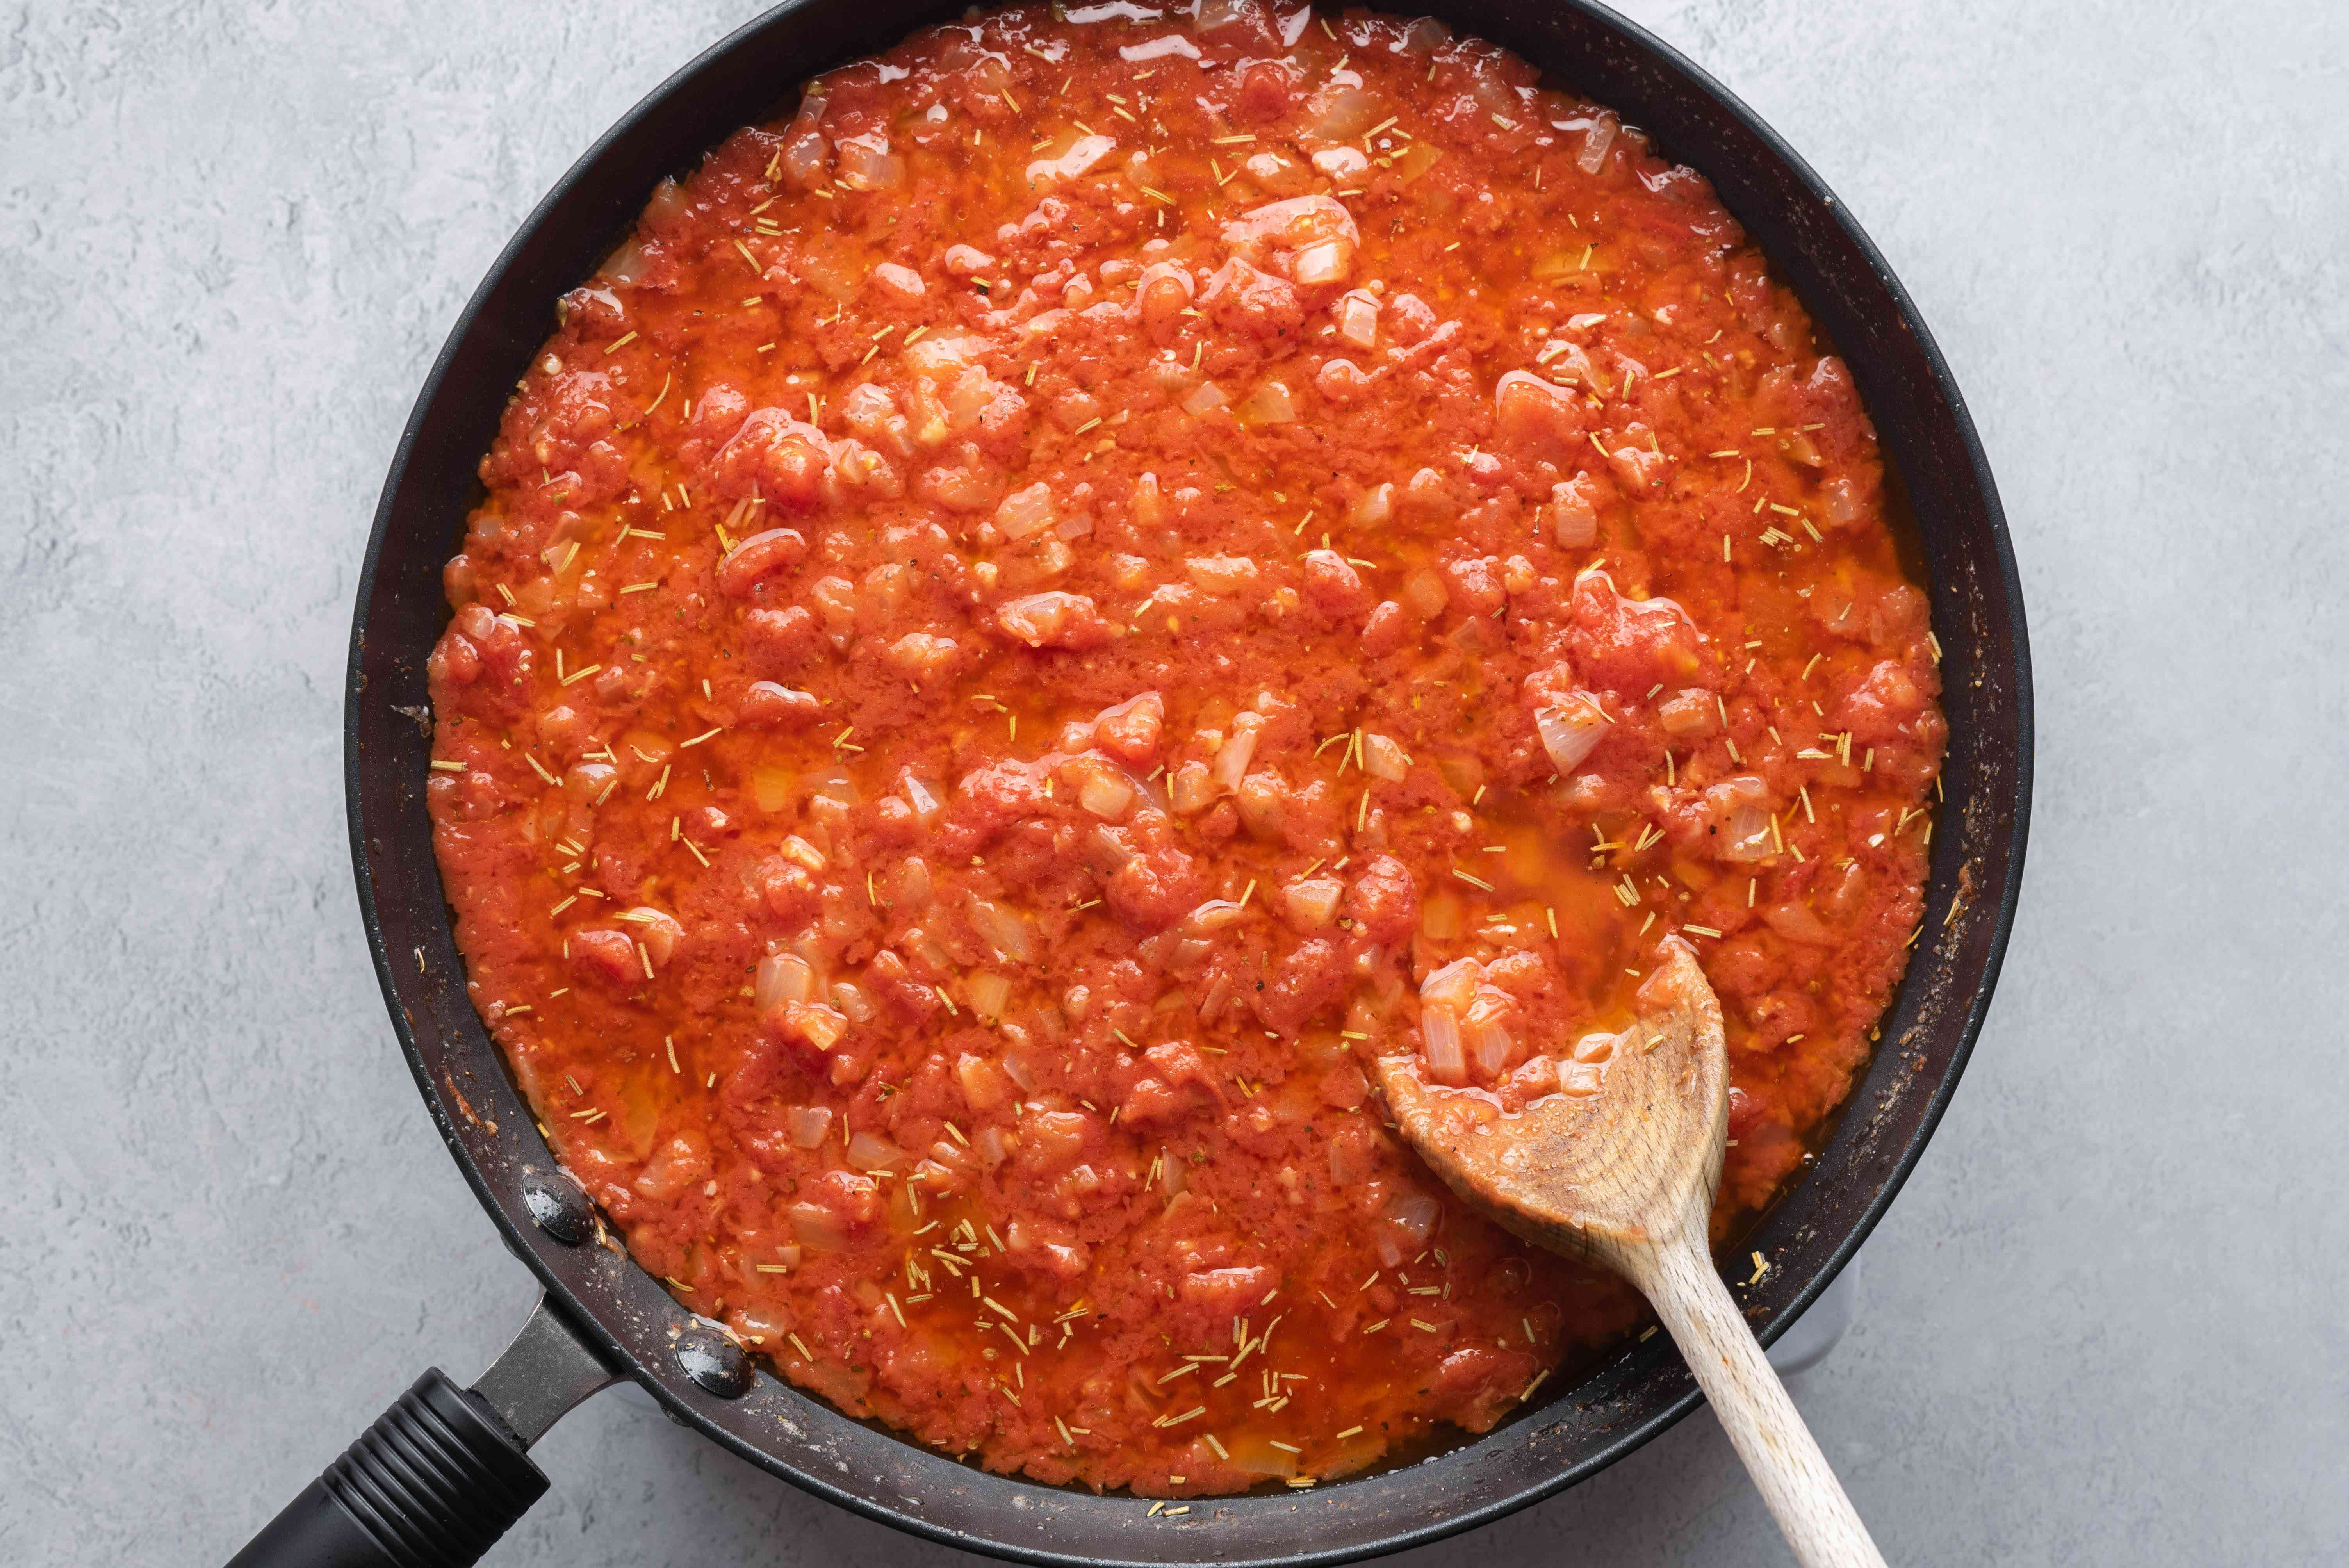 Add tomatoes, spices, salt, and pepper to the onion mixture in the pan